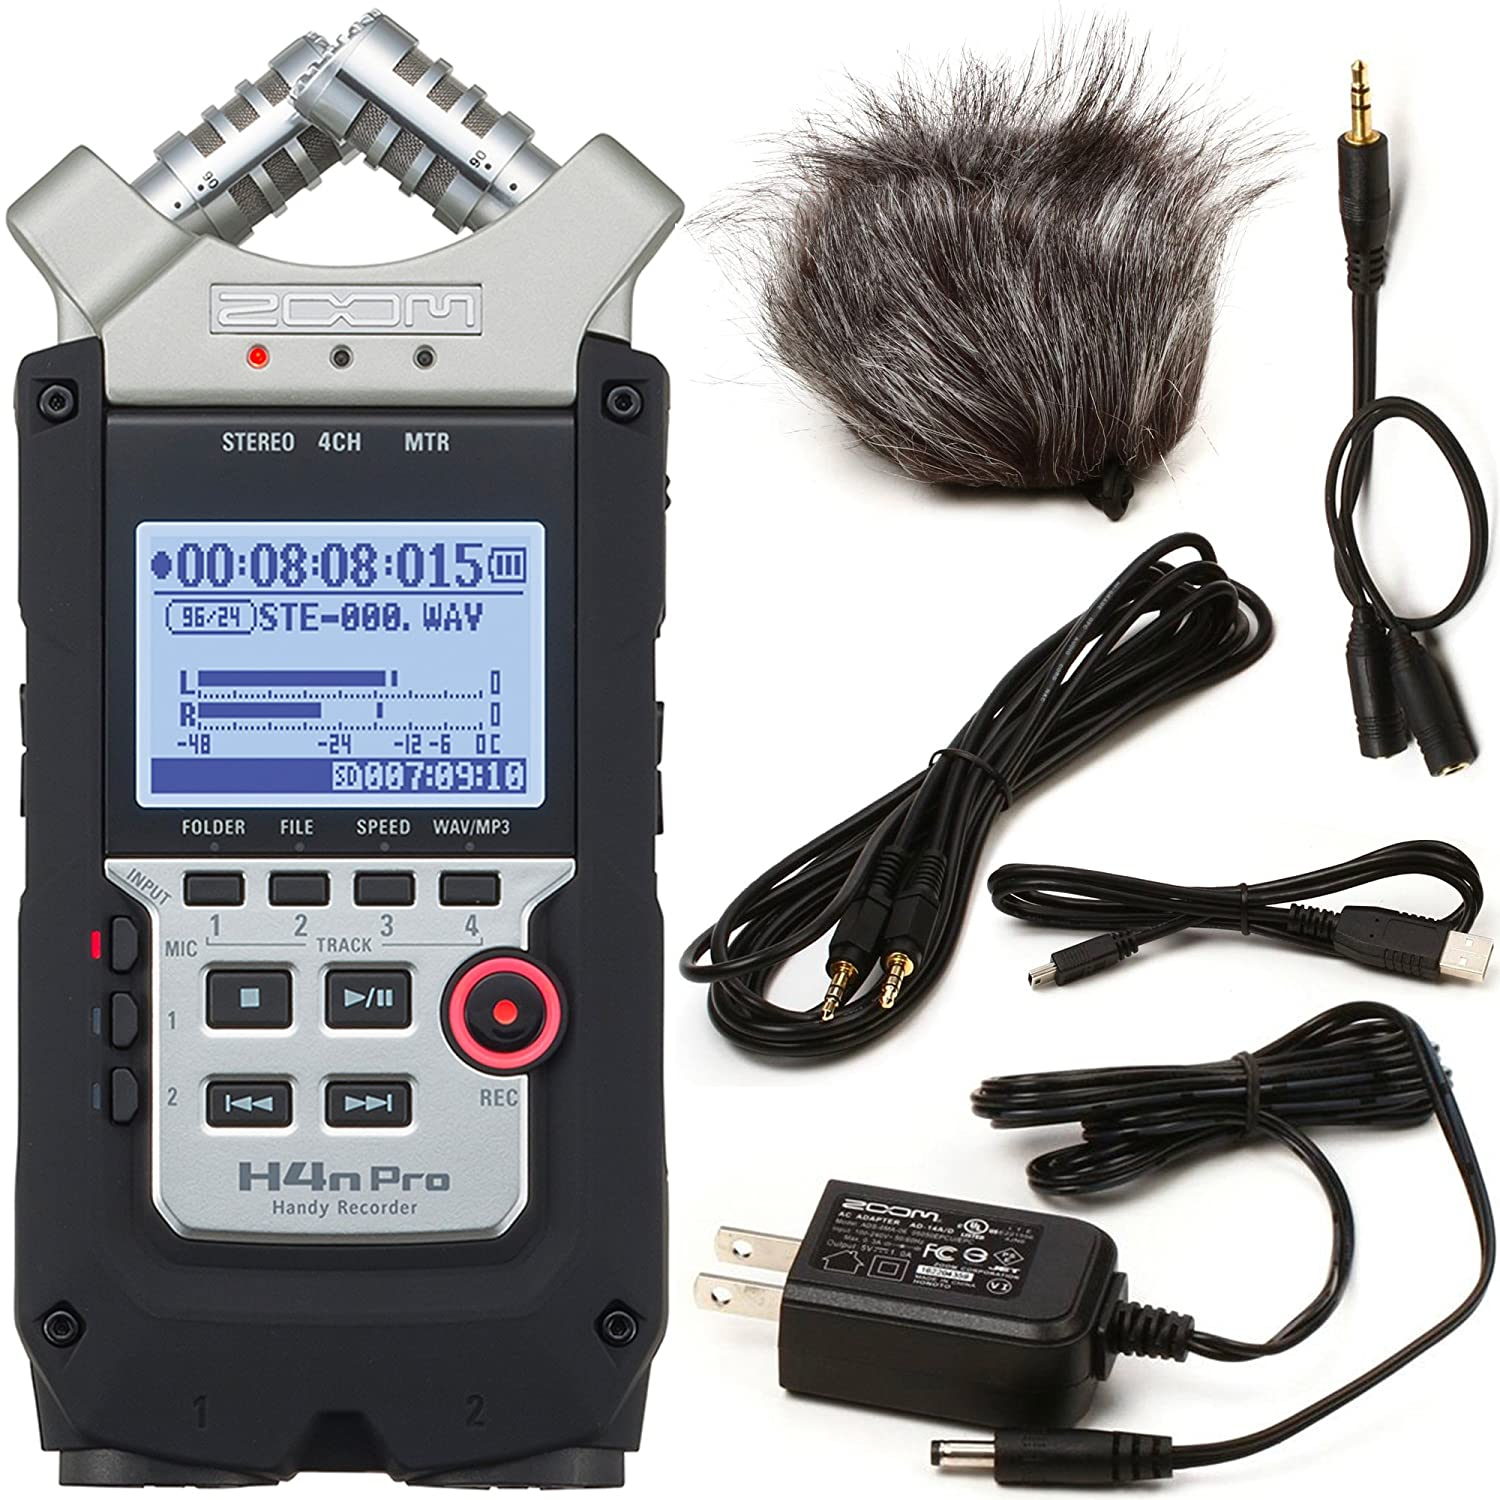 Zoom H4n Pro Four-Track Handy Audio Recorder with Accessory Pack FP Logistics